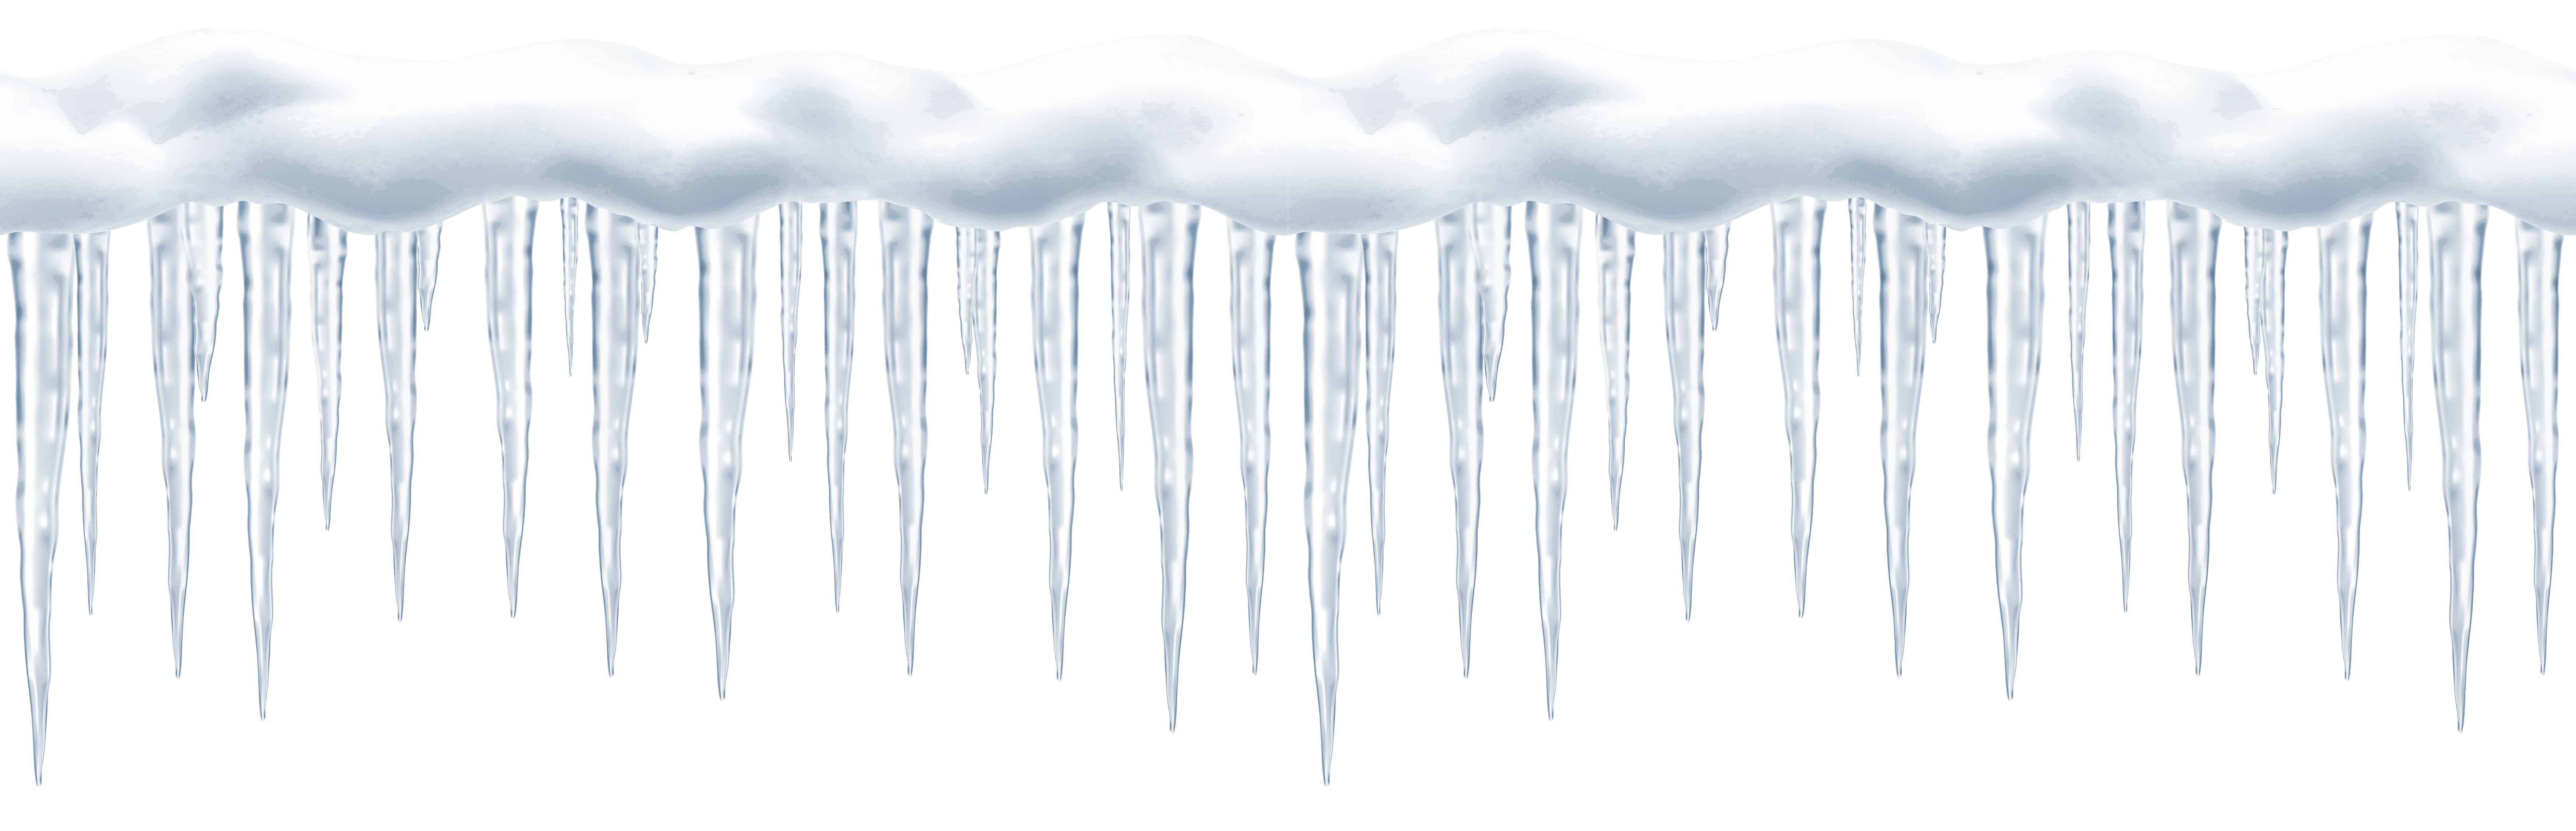 Icicles Free Download PNG HQ PNG Image